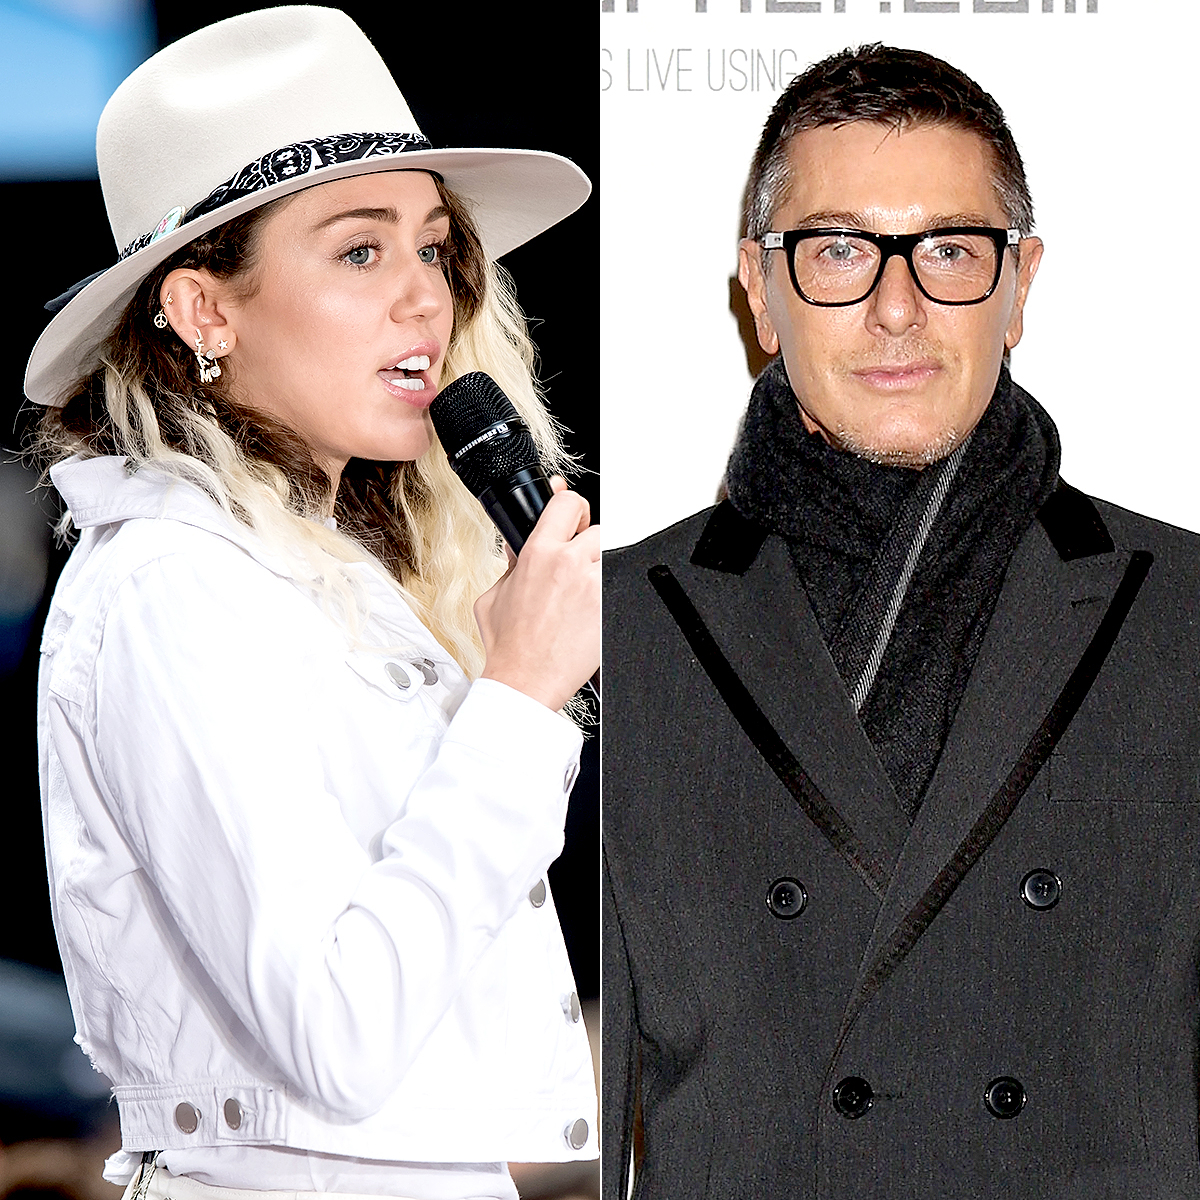 Miley Cyrus Feuds With Dolce & Gabbana After Brother Braison Walks in Designer's Show